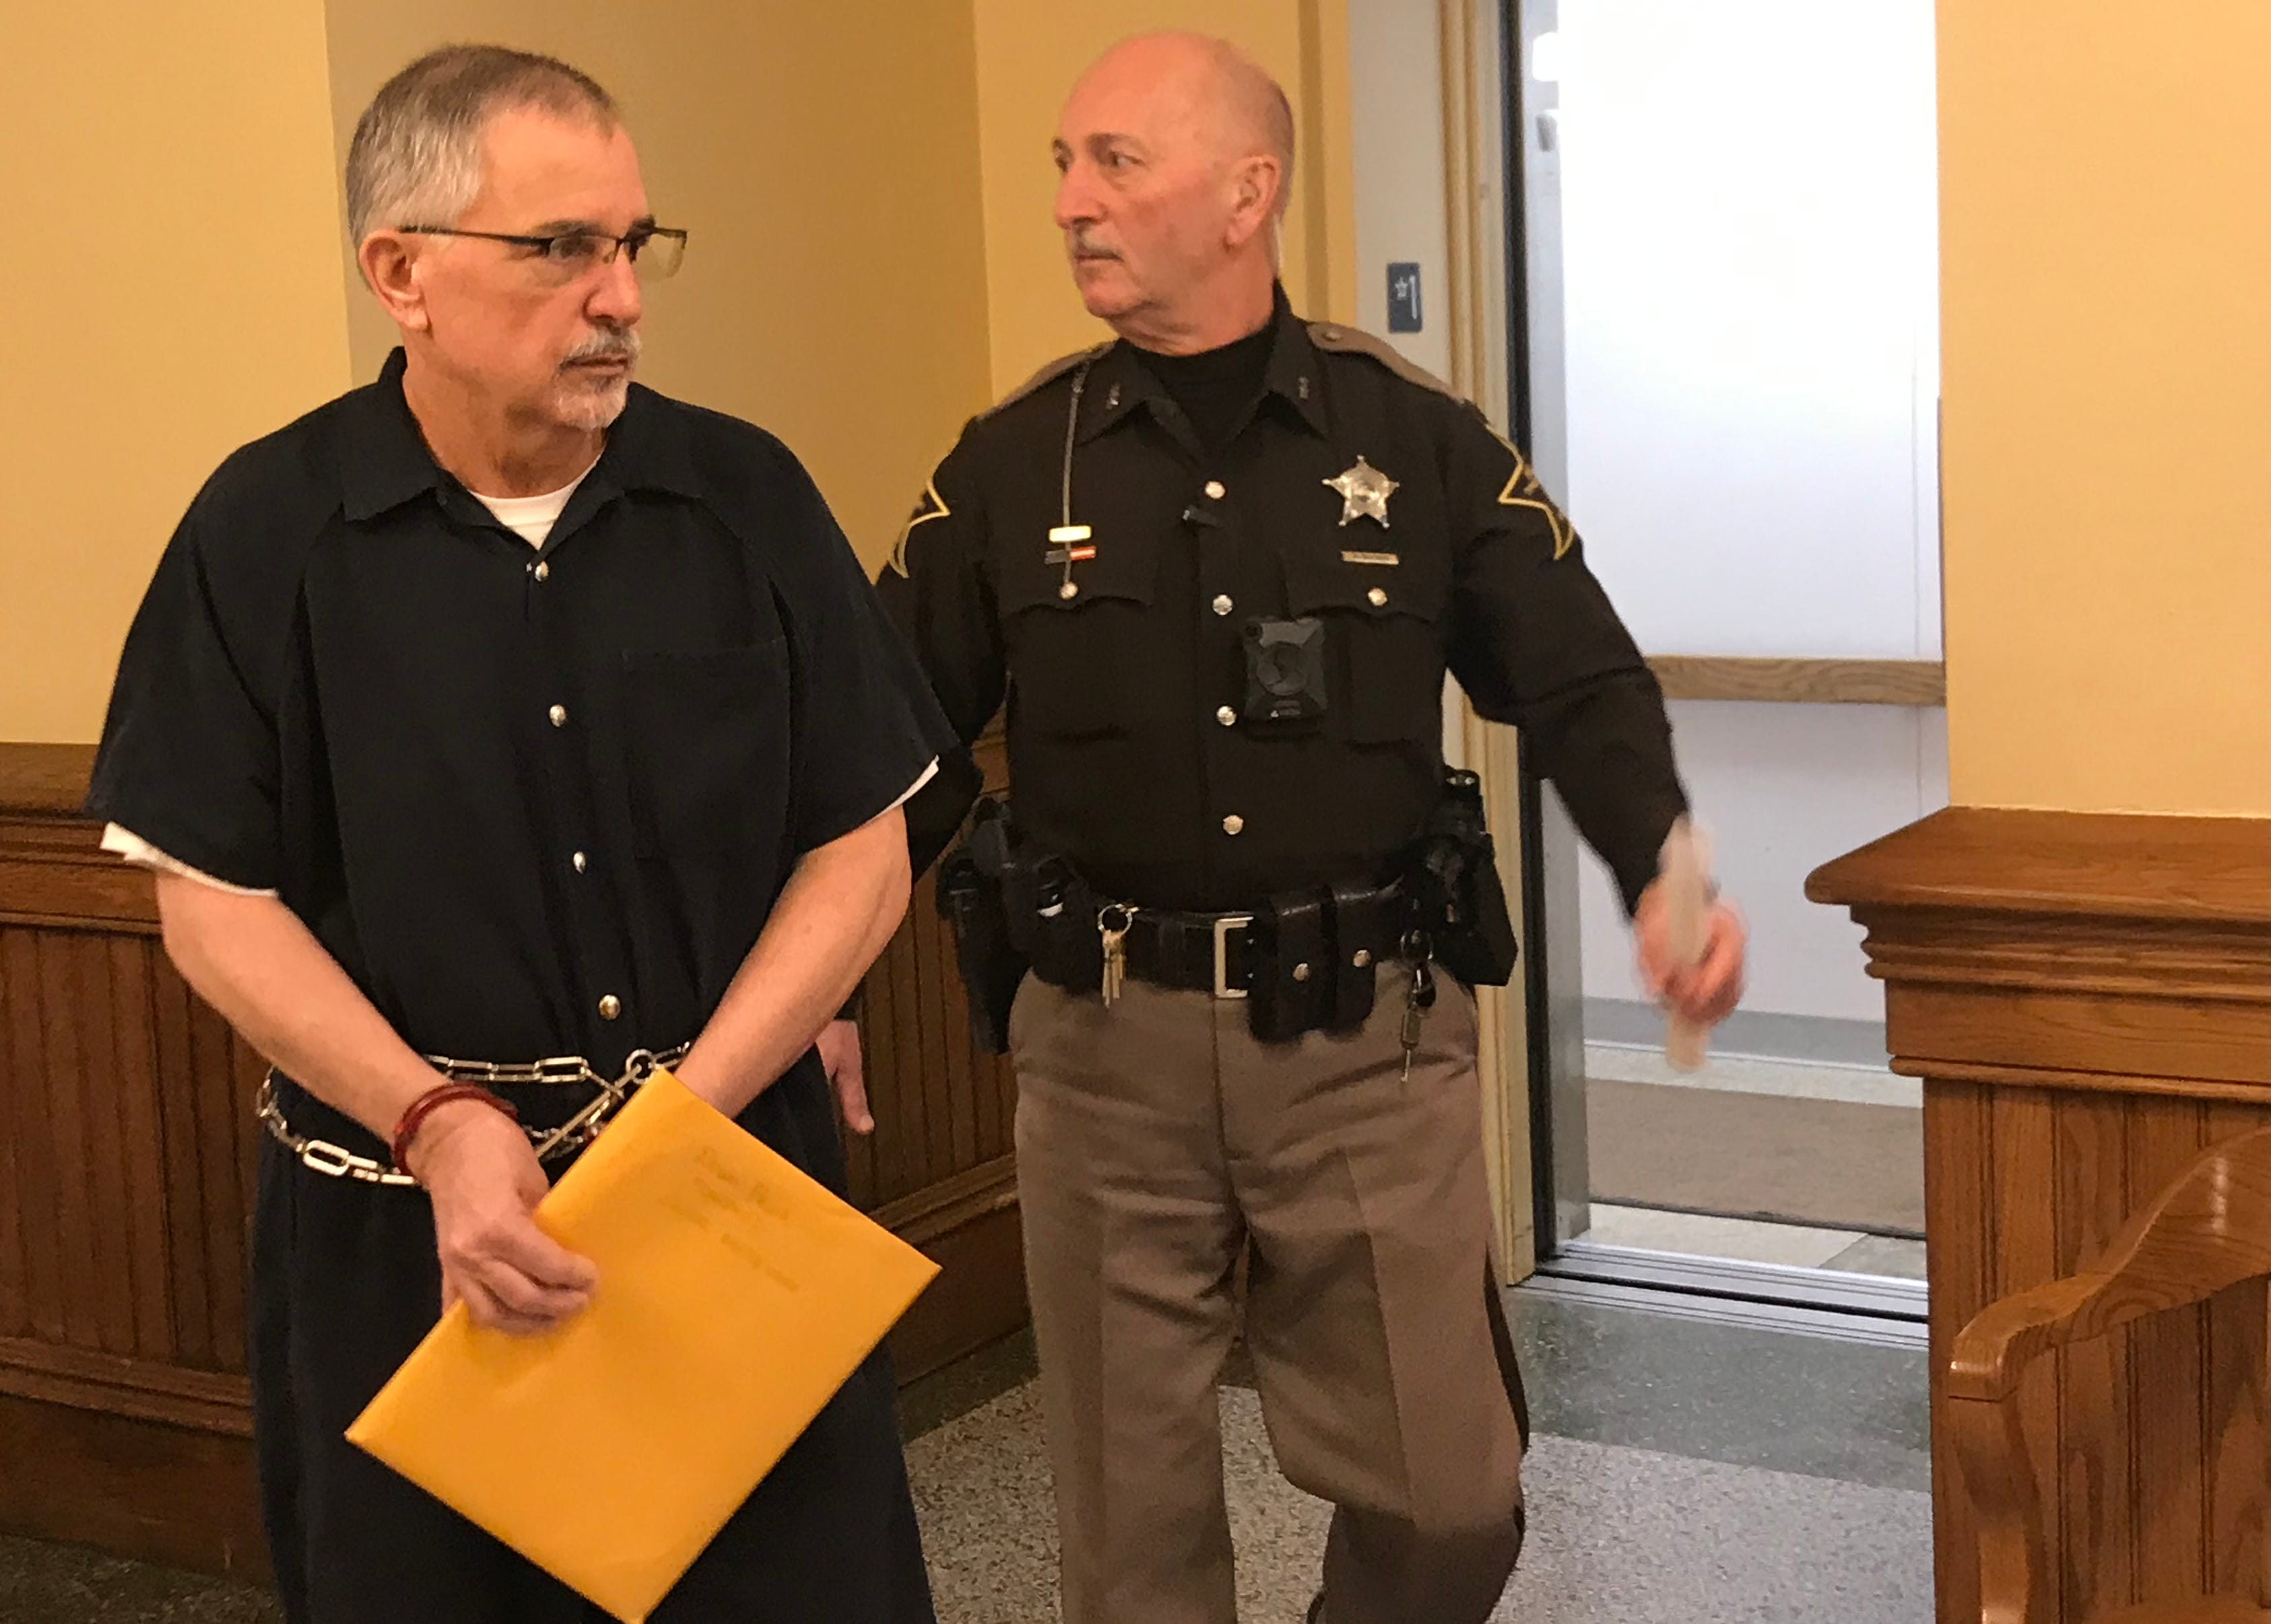 Sixty-two-year-old Douglas Richard Felix leaves the Tippecanoe County Courthouse Thursday afternoon to begin serving a 30-year prison sentence for molesting a child.